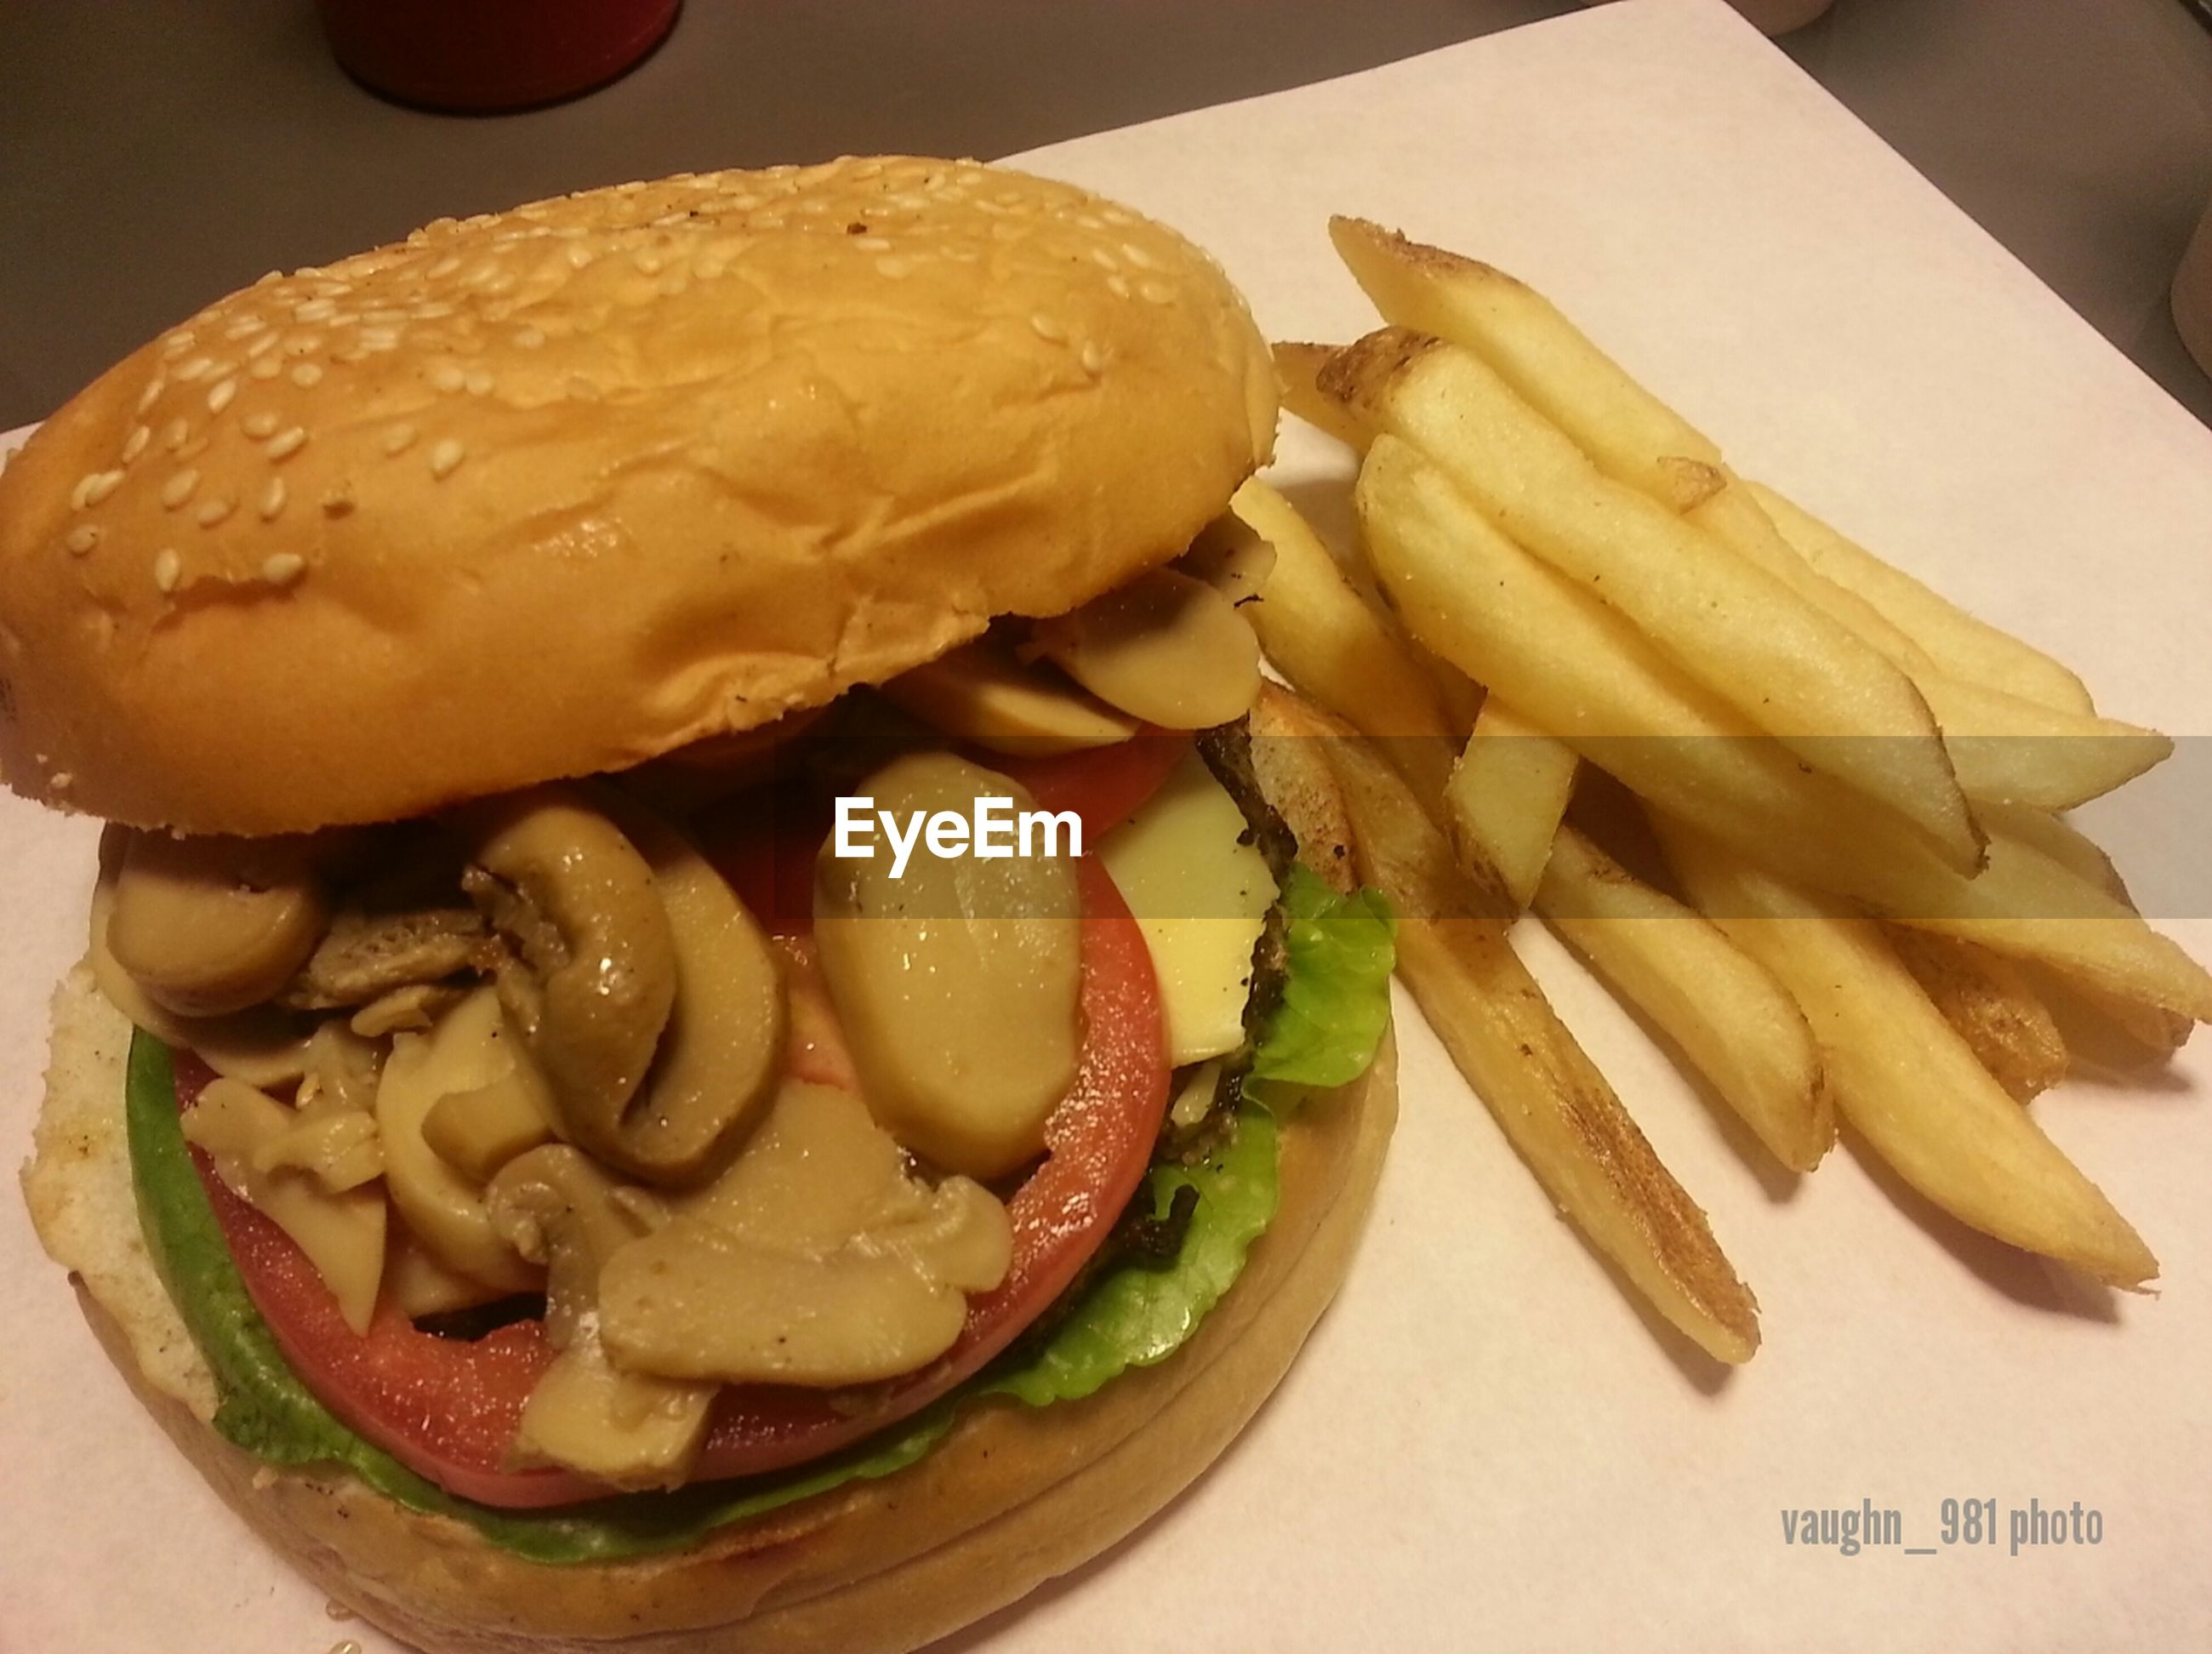 food, food and drink, freshness, ready-to-eat, indoors, plate, still life, unhealthy eating, indulgence, close-up, serving size, slice, table, bread, french fries, fast food, meal, prepared potato, sandwich